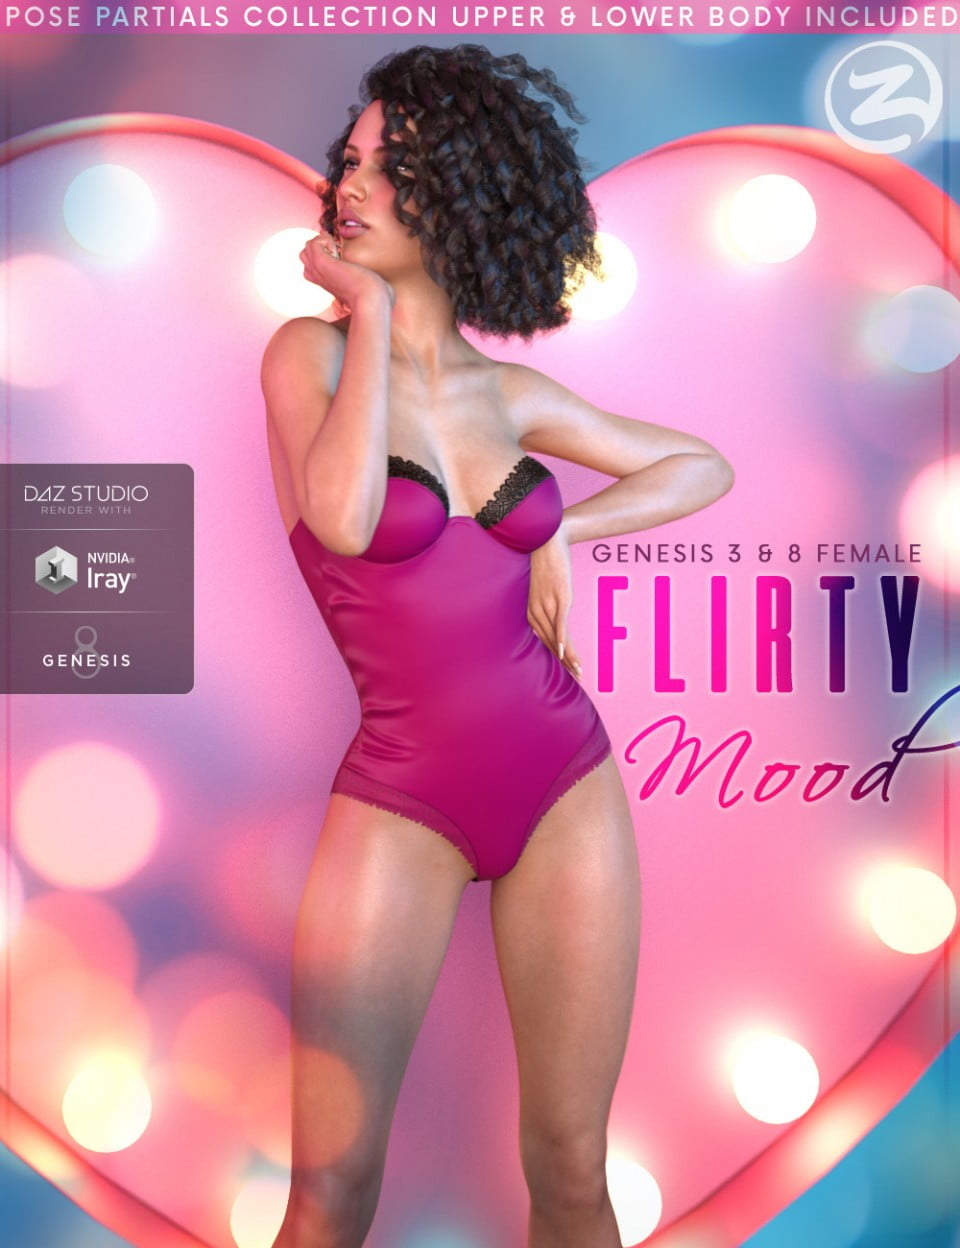 Z Flirty Mood – Poses and Partials for Genesis 3 and 8 Female